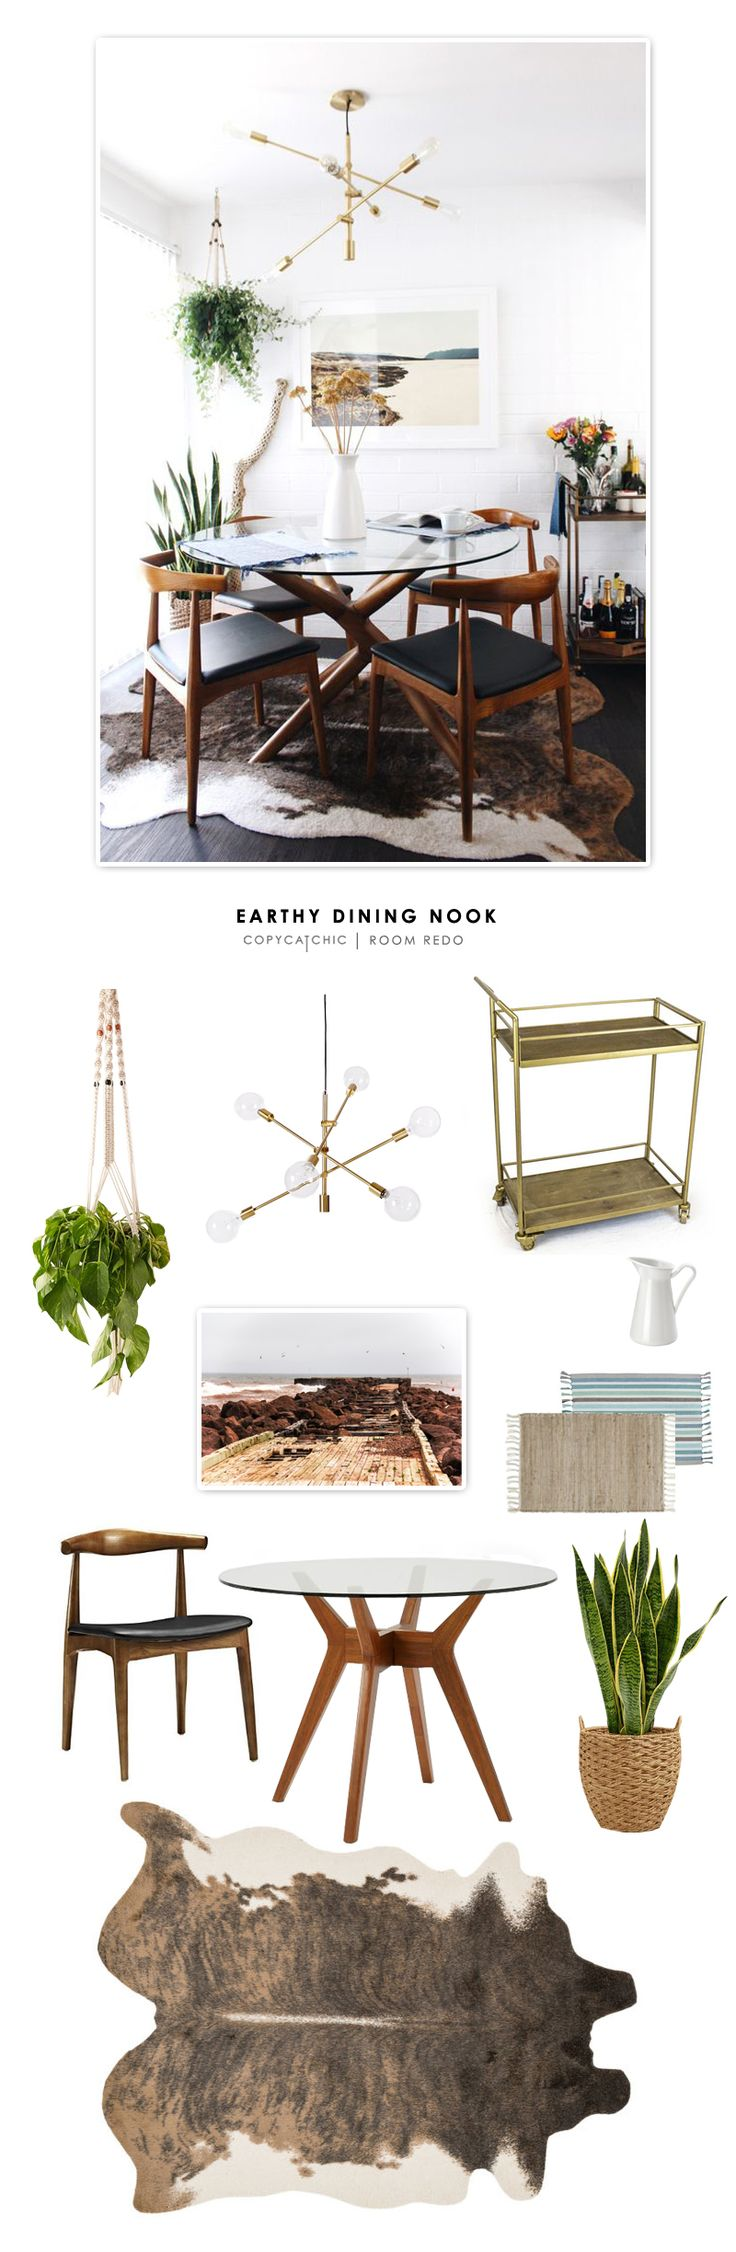 Copy Cat Chic Room Redo | Earthy Dining Nook